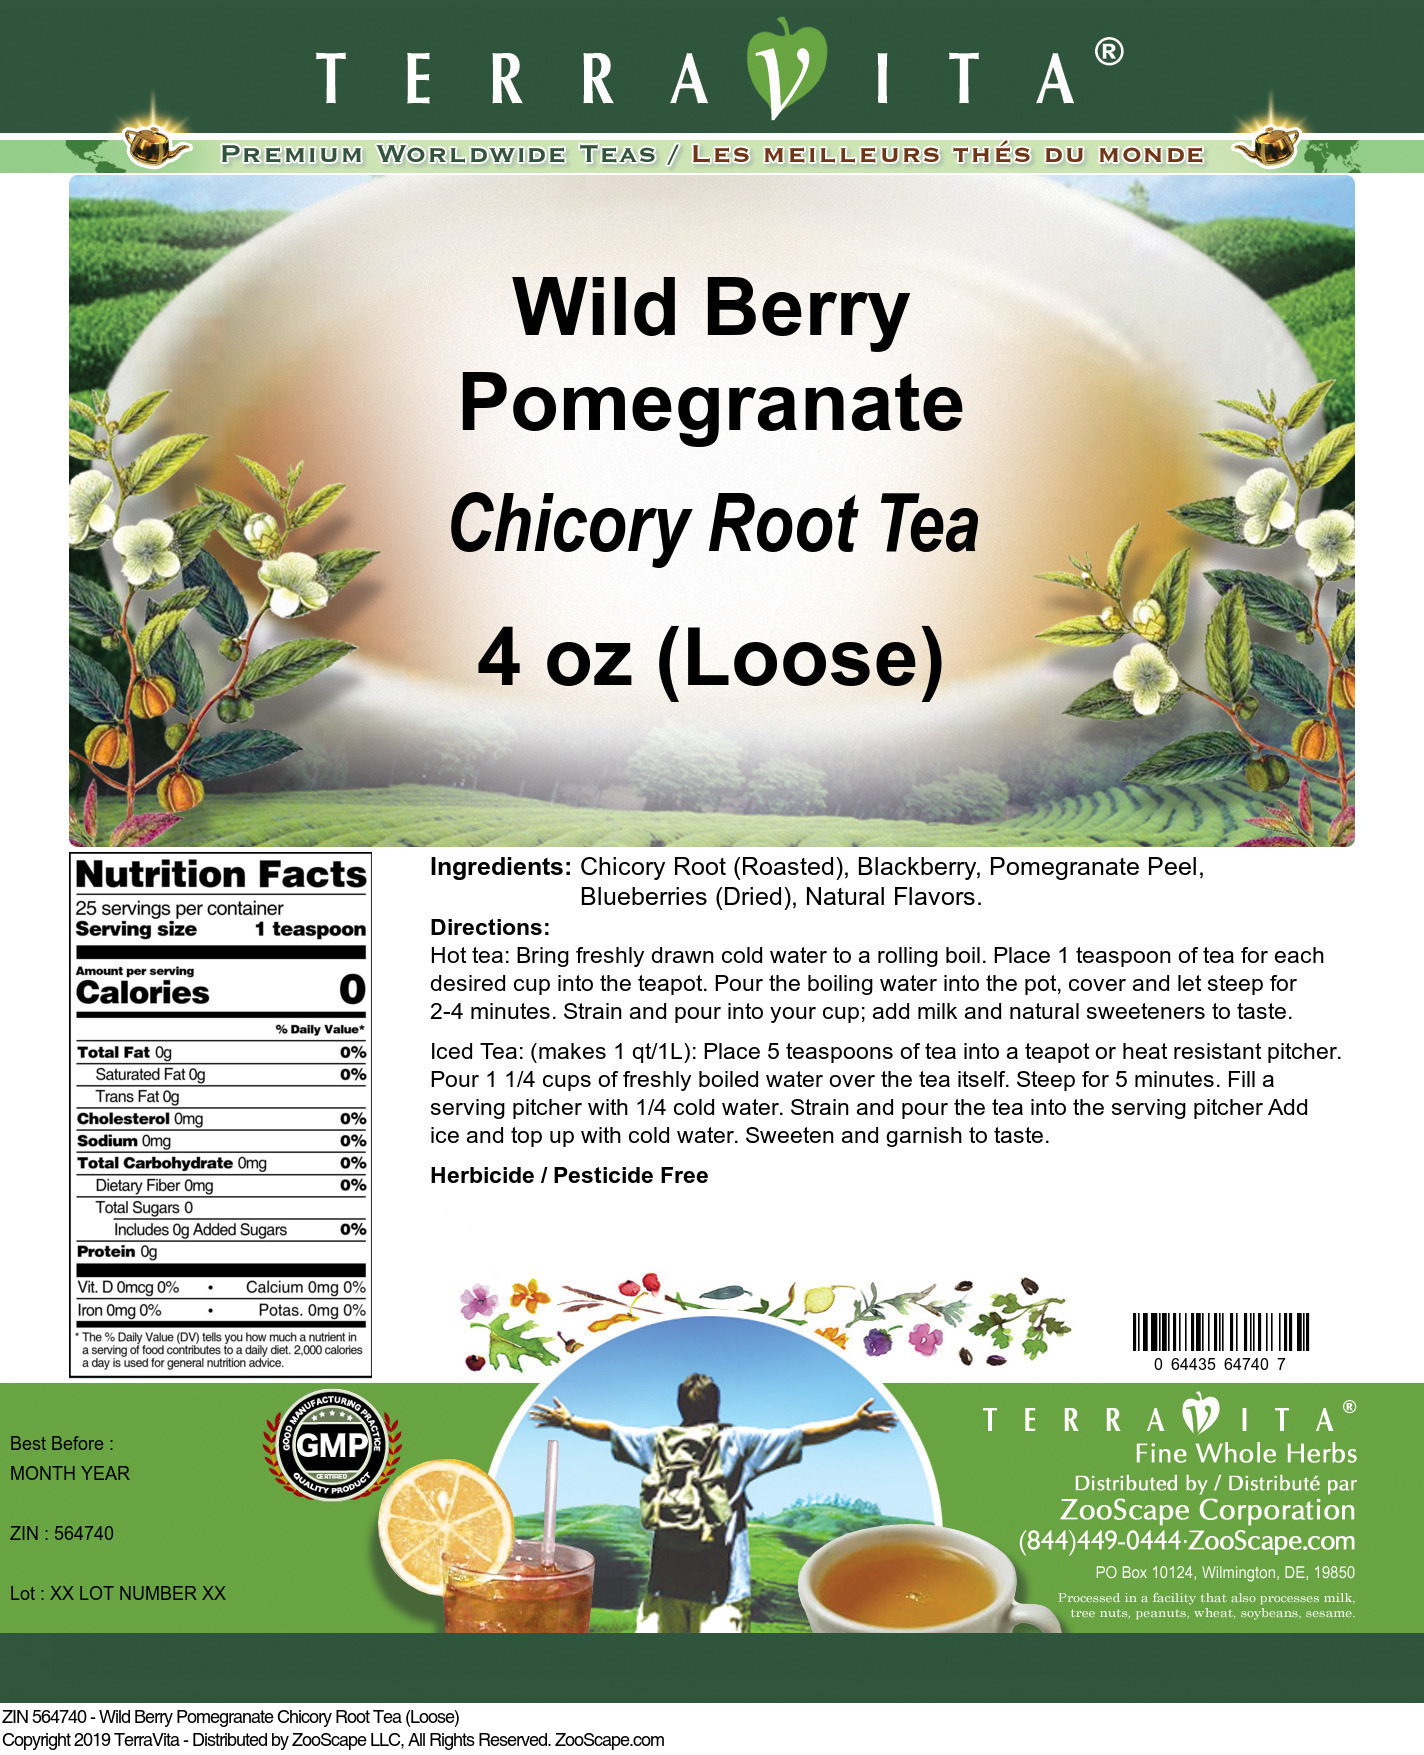 Wild Berry Pomegranate Chicory Root Tea (Loose)